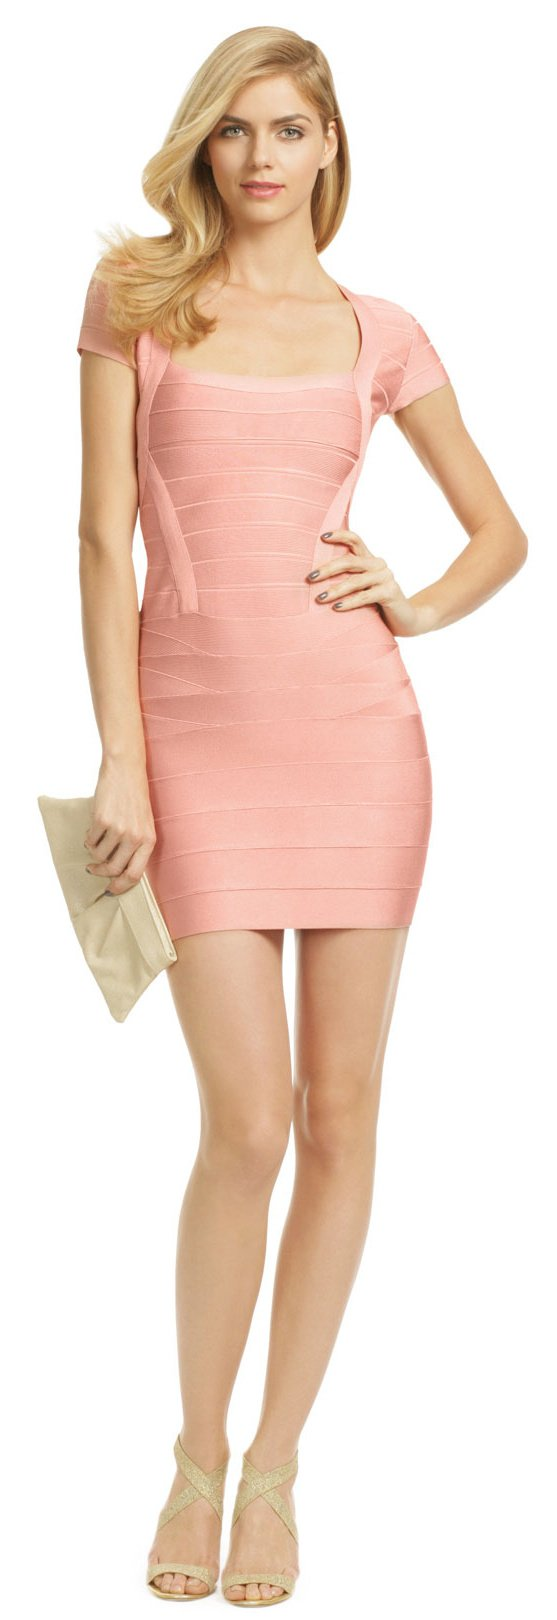 Herve Leger Guys Kind Of Girl Dress